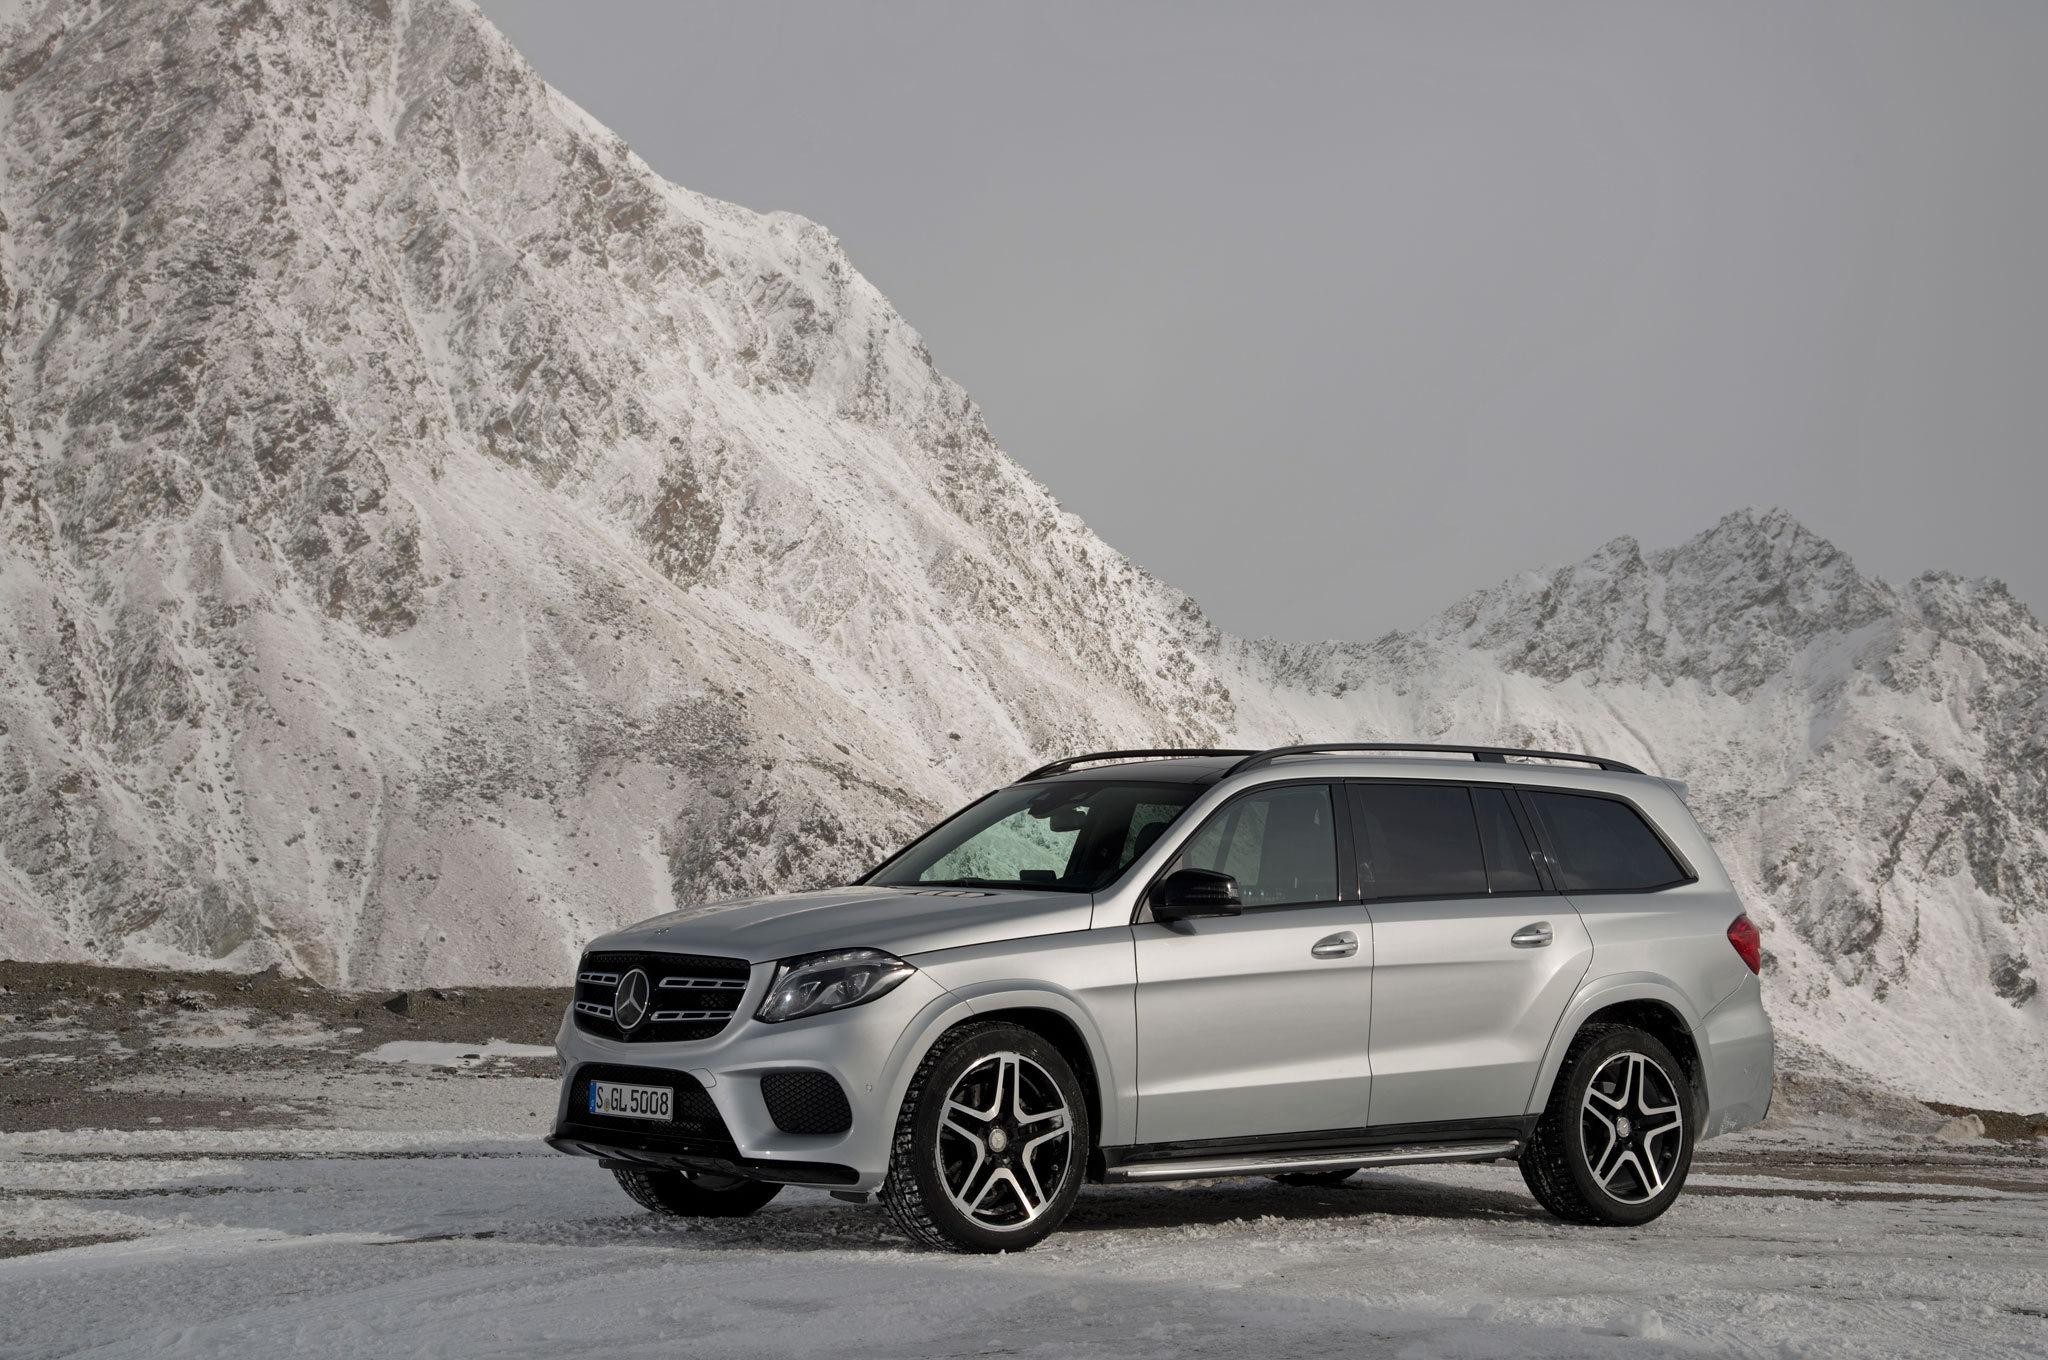 2017 mercedes benz gls review for Mercedes benz mountain view